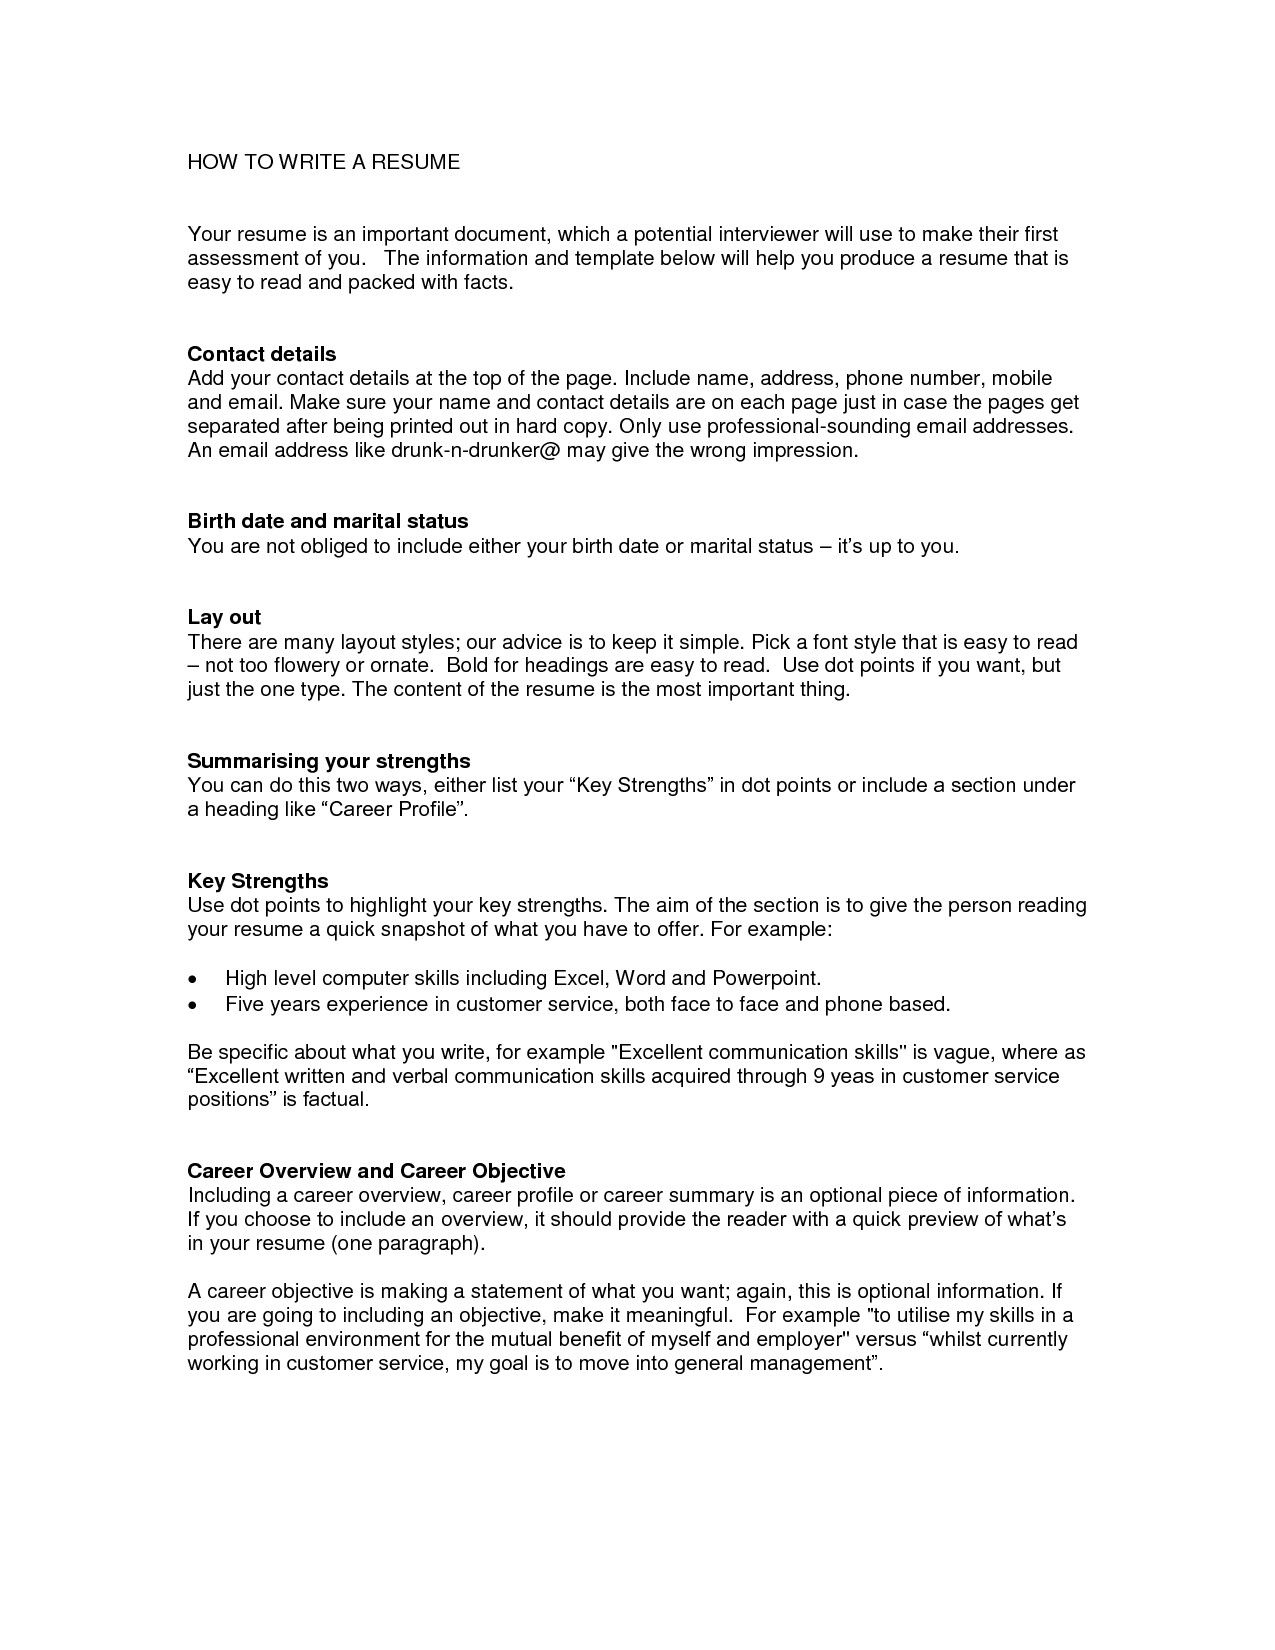 Putting Address On Resume How To Write A Resume Net The Easiest Line Resume Resume Template Examples Graphic Design Resume Resume